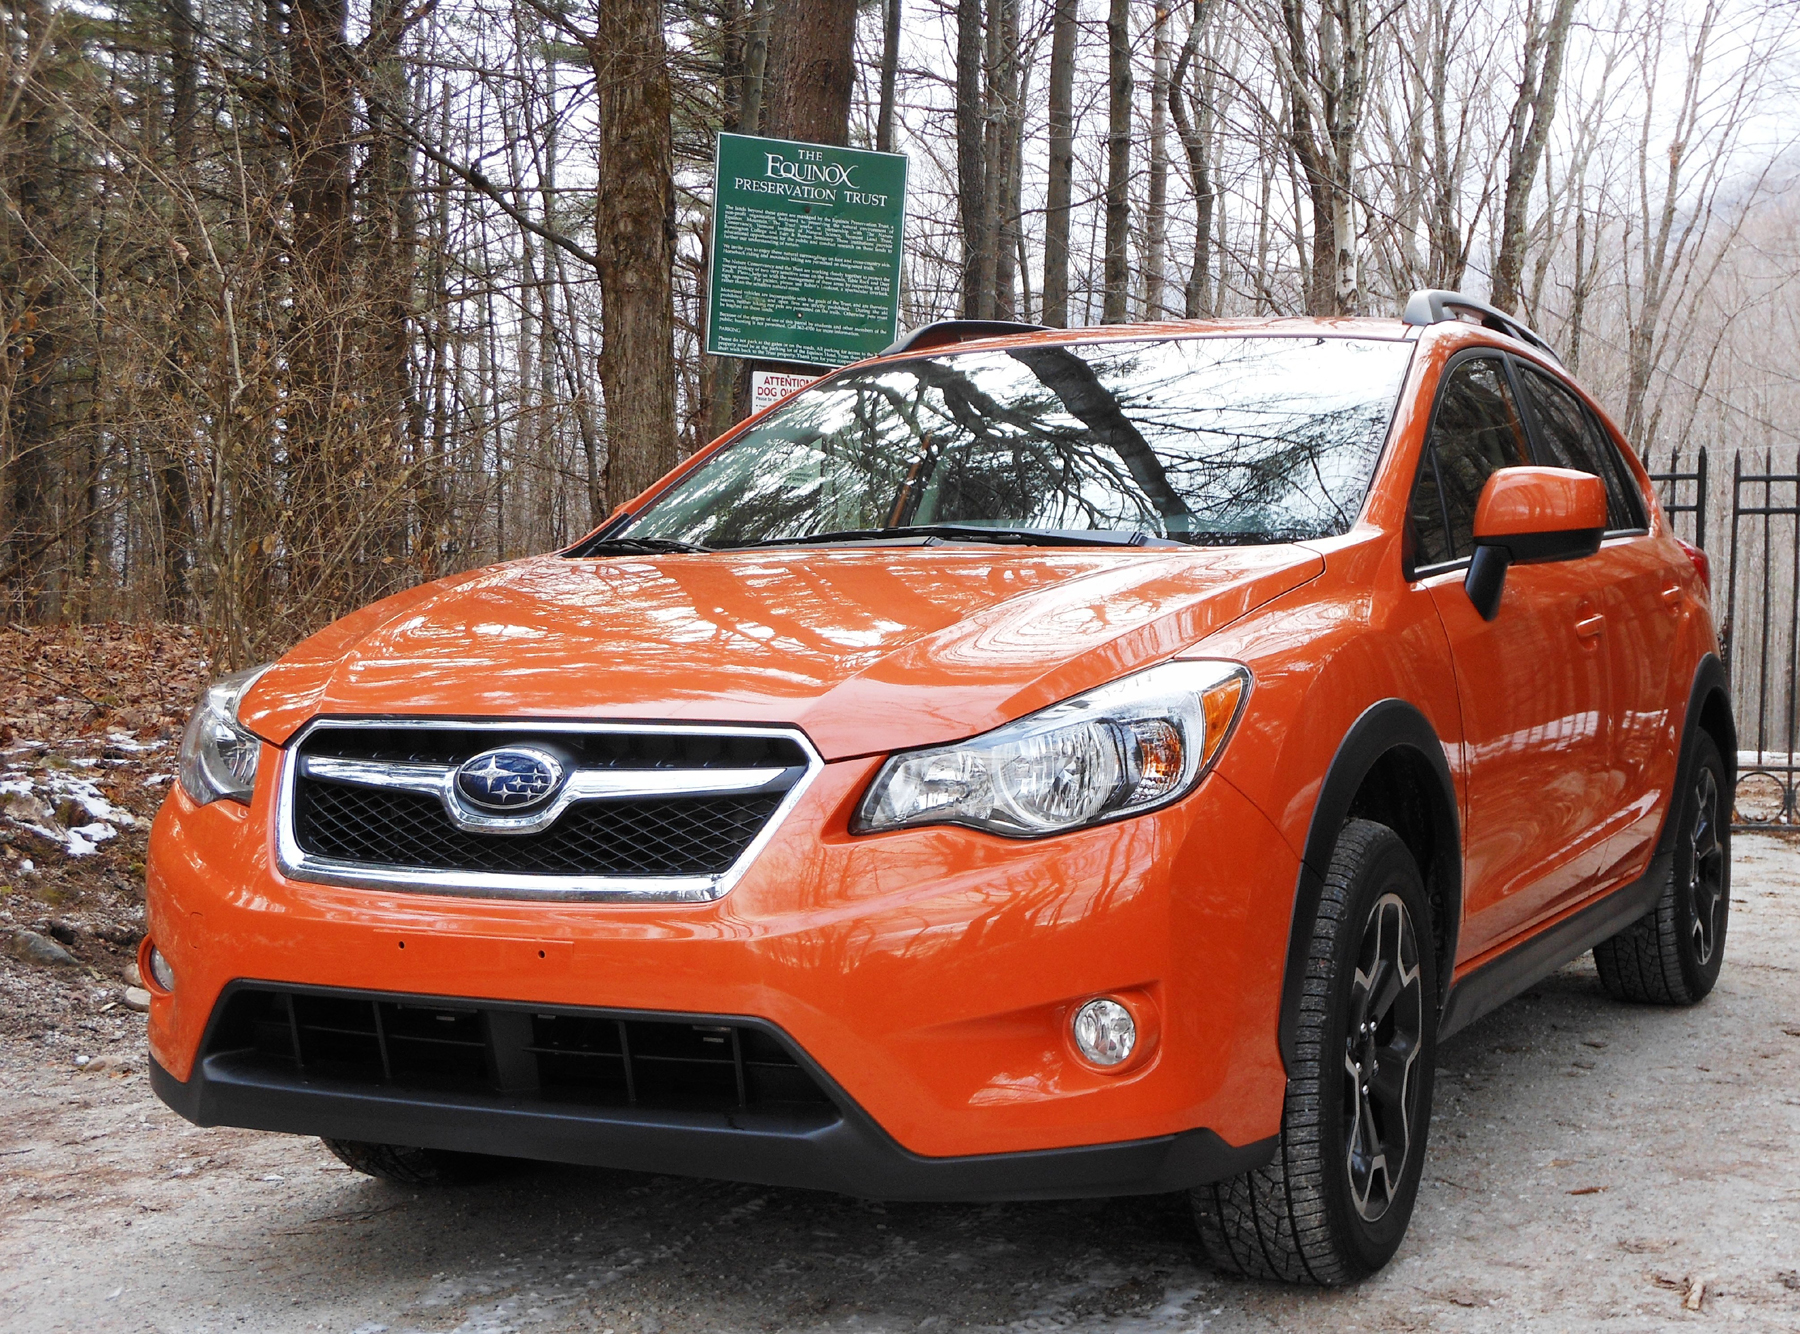 The Xv Crosstrek Is Essentially A Subaru Impreza Wagon With Extra Ground Clearance It Replaces Outback Sport Which Was In Essence